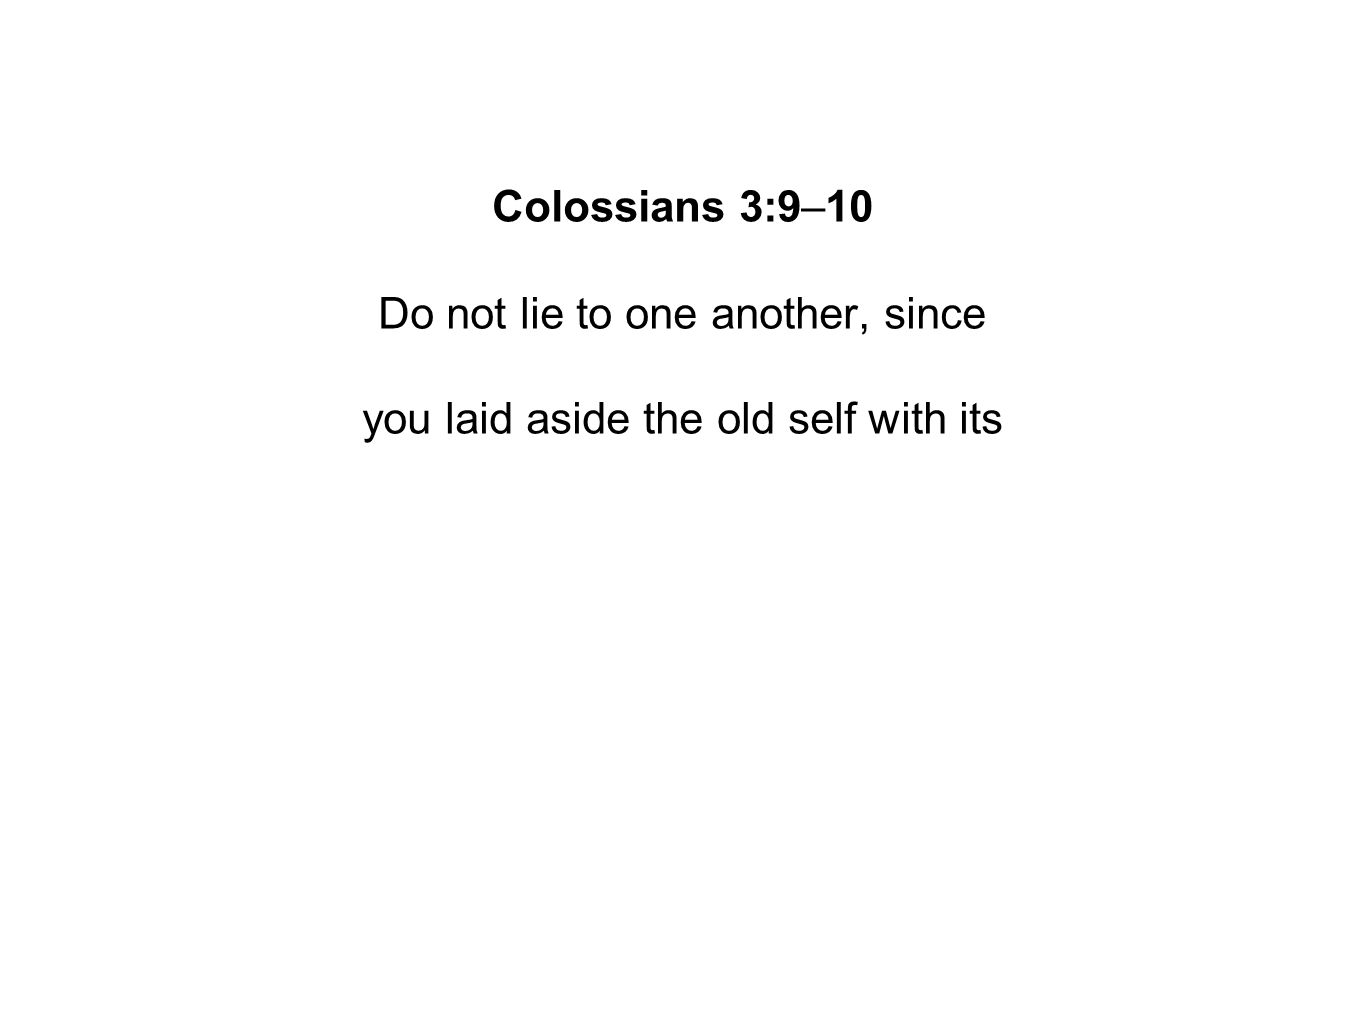 Colossians 3:9–10 Do not lie to one another, since you laid aside the old self with its